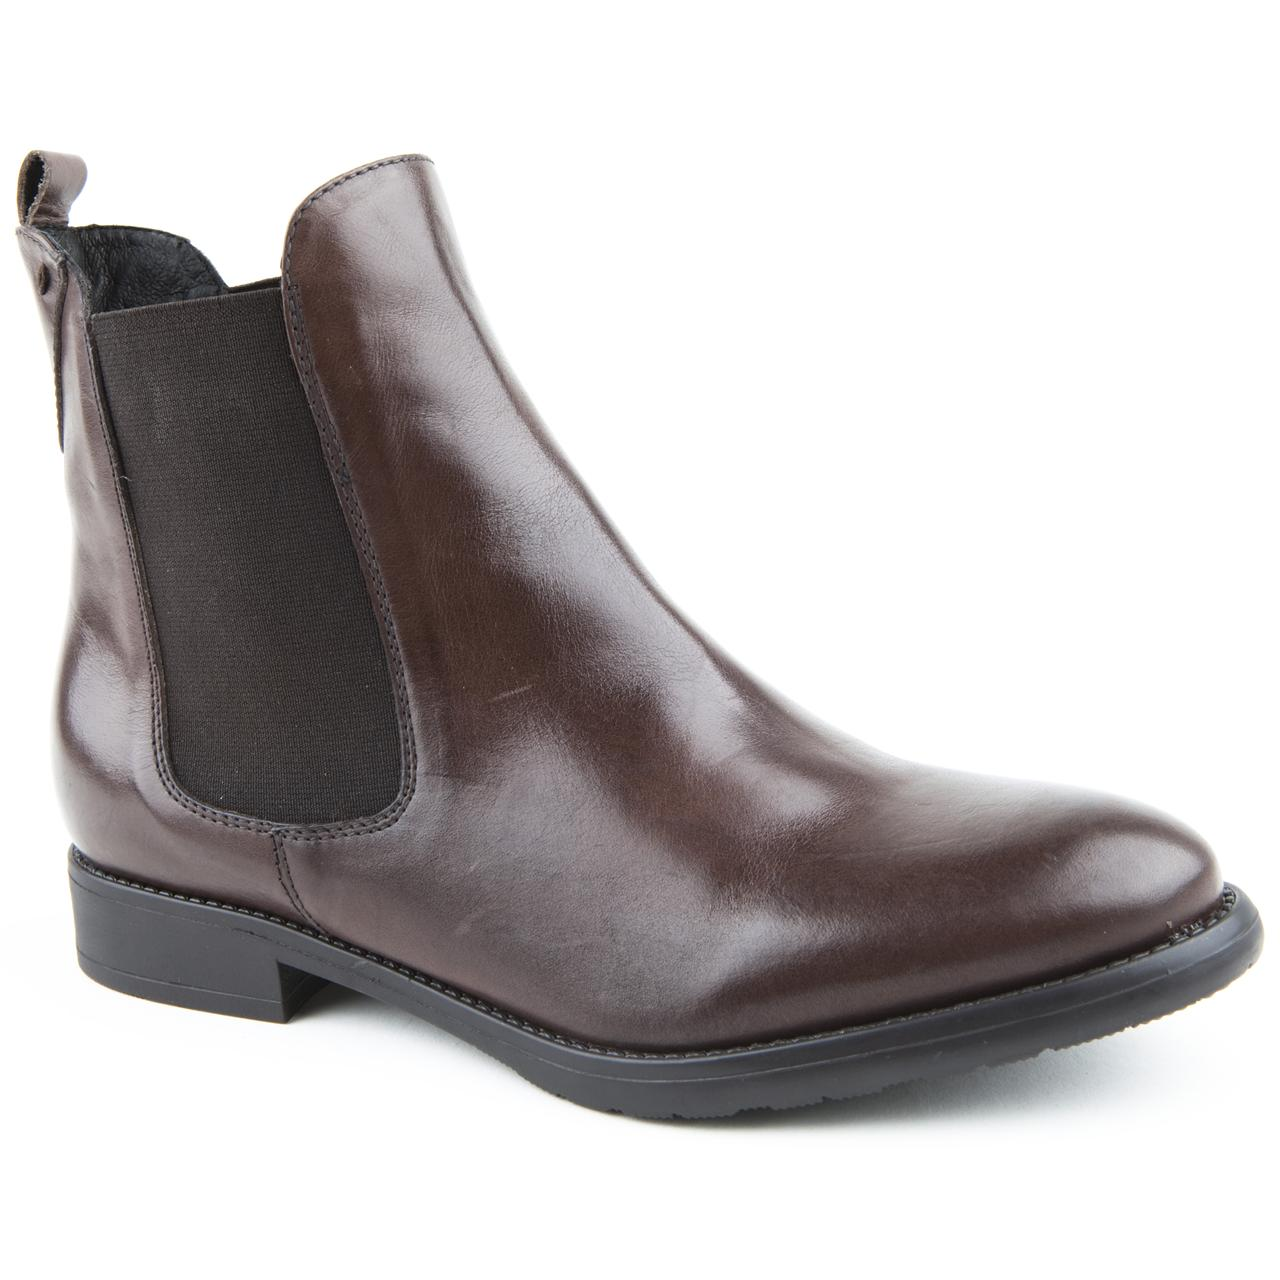 Lille ankle boots, £89, Jones